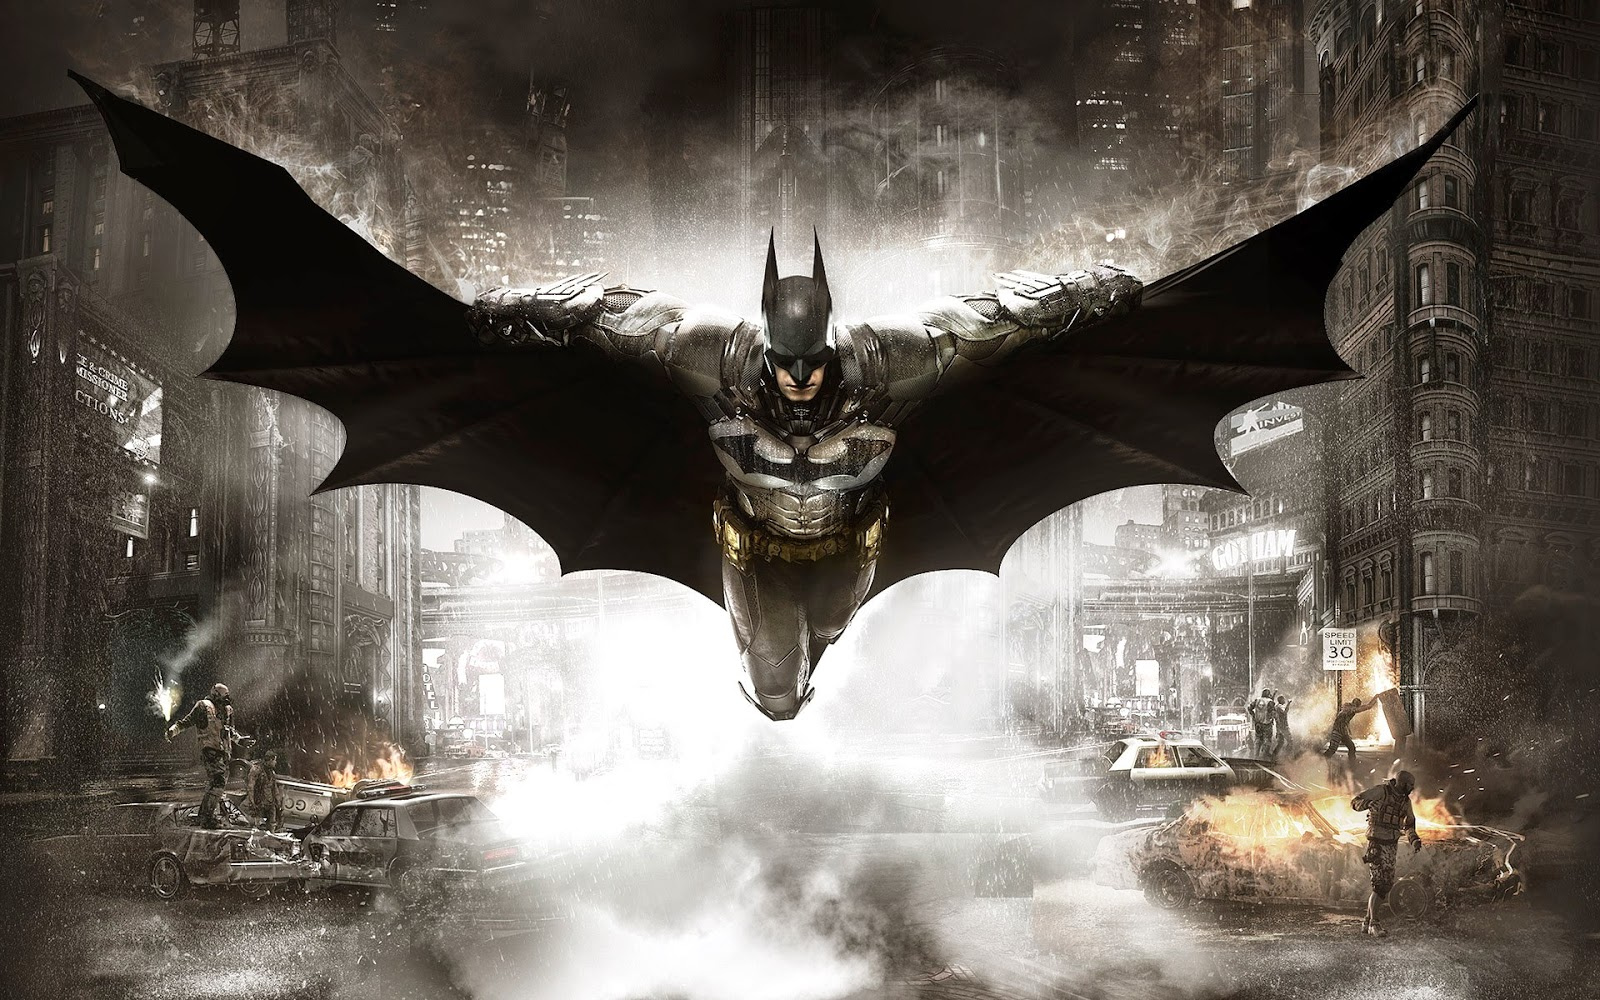 http://psgamespower.blogspot.com/2014/12/batman-arkham-knight-video-de.html